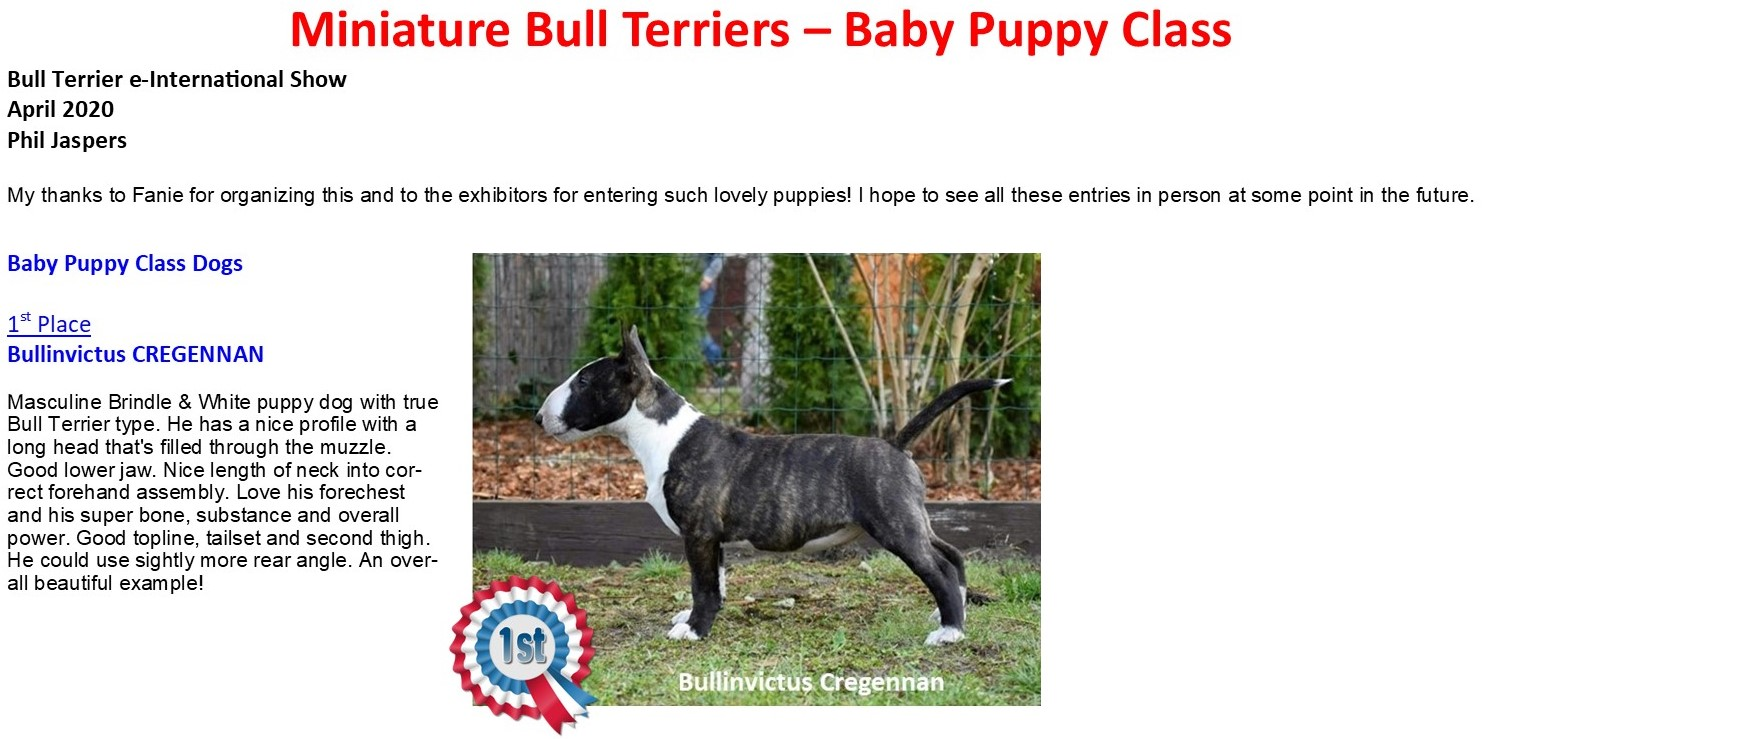 MBT Baby Puppy Class 1